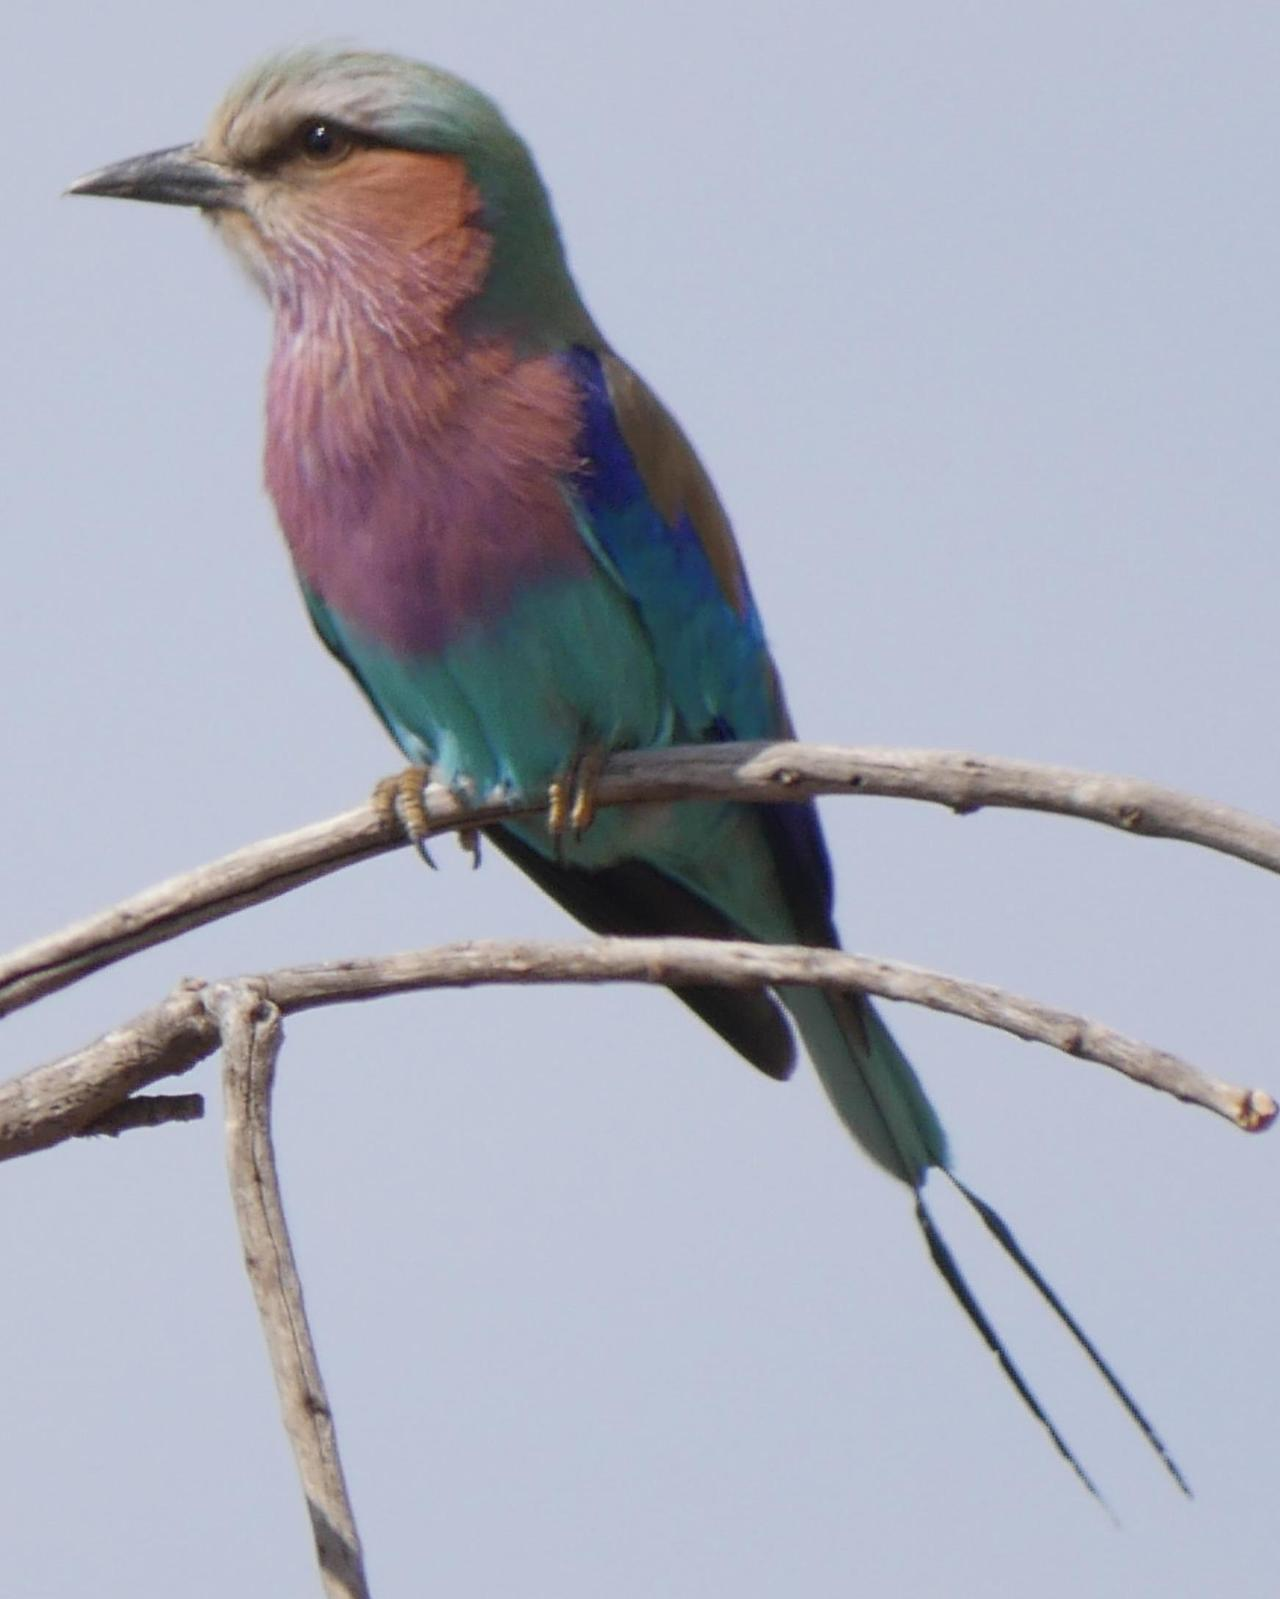 Lilac-breasted Roller Photo by Peter Lowe